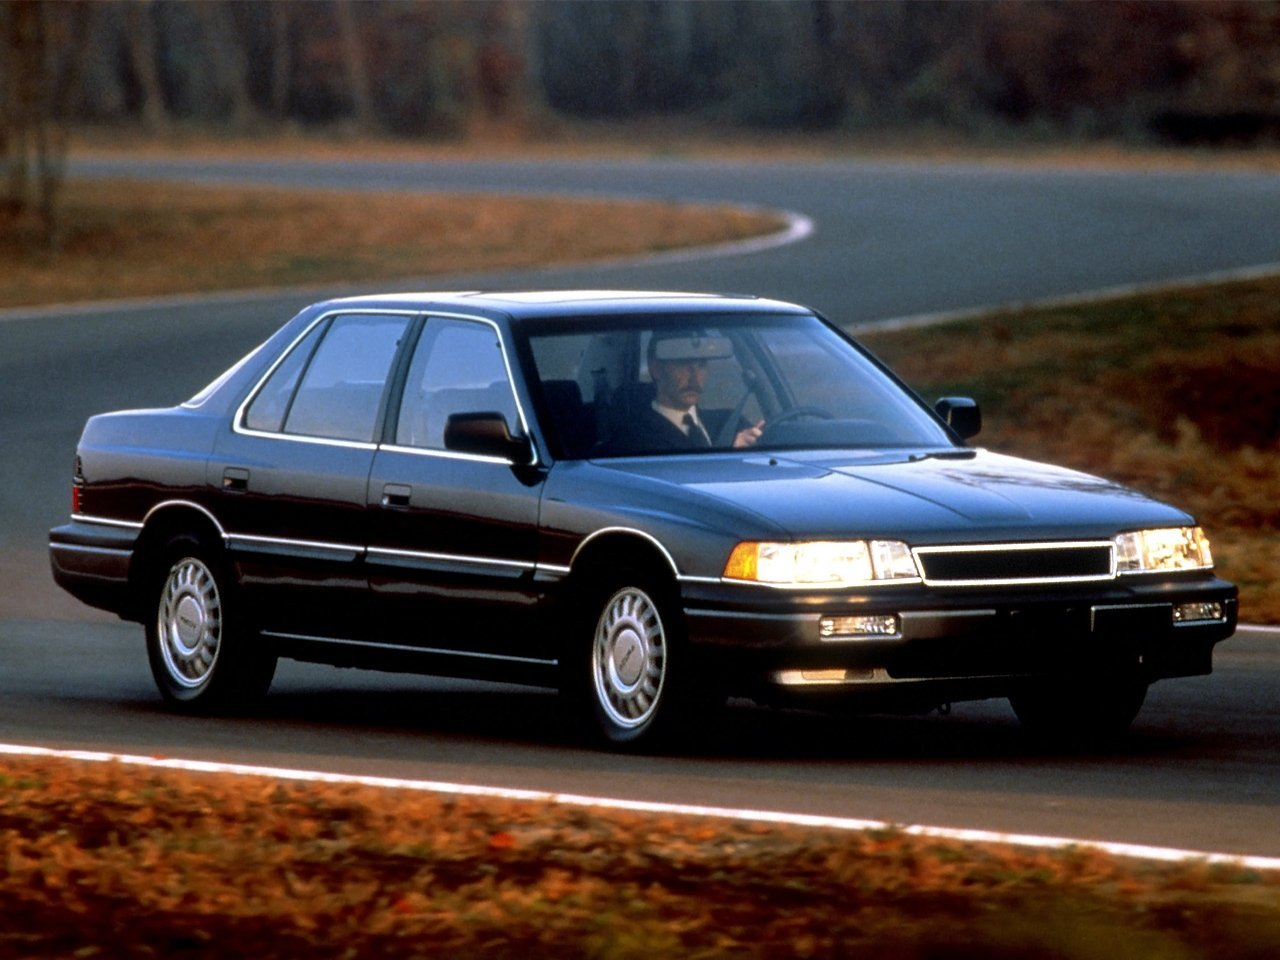 Автомобиль Acura Legend